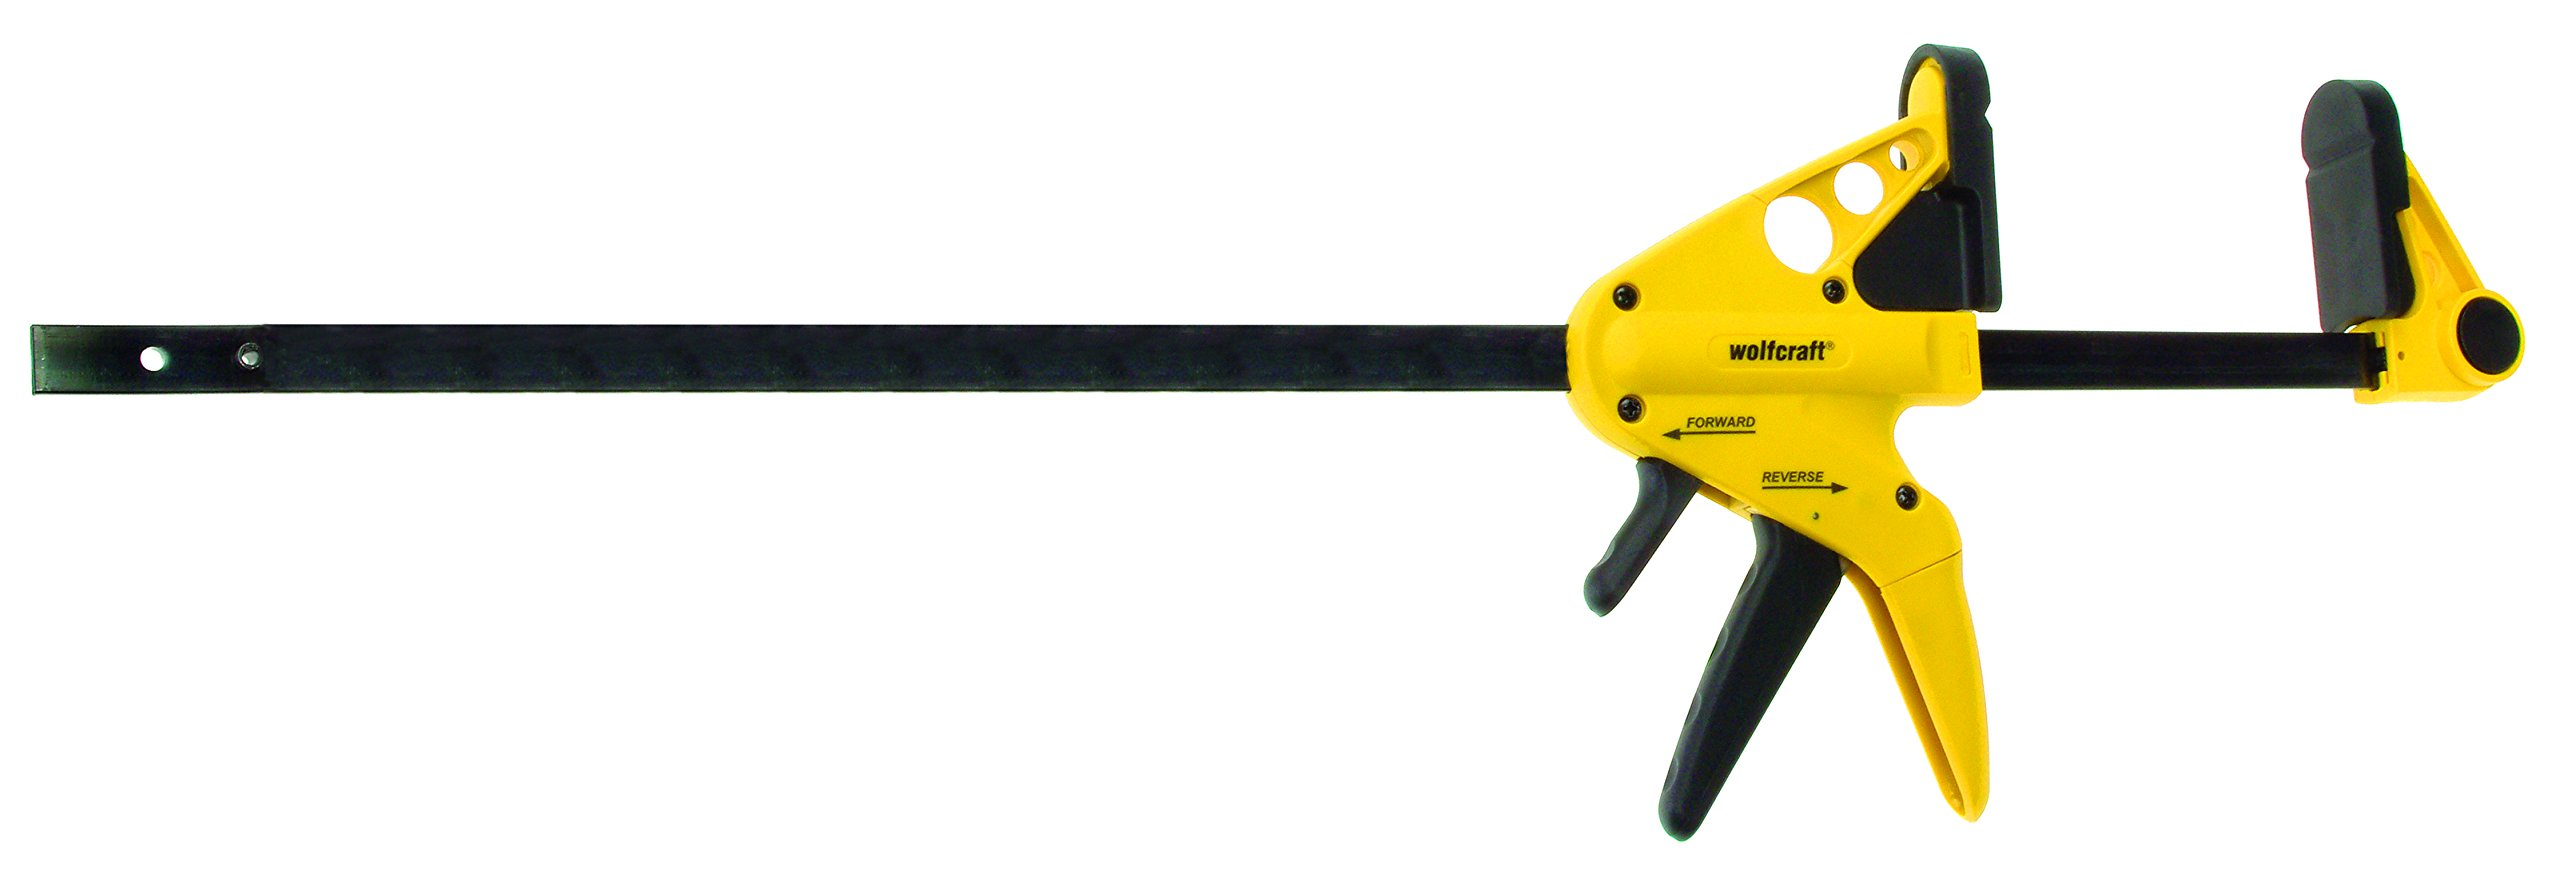 wolfcraft 3450403 Quick-Jaw One-Hand Bar Clamp and Spreader, 24in. by Wolfcraft